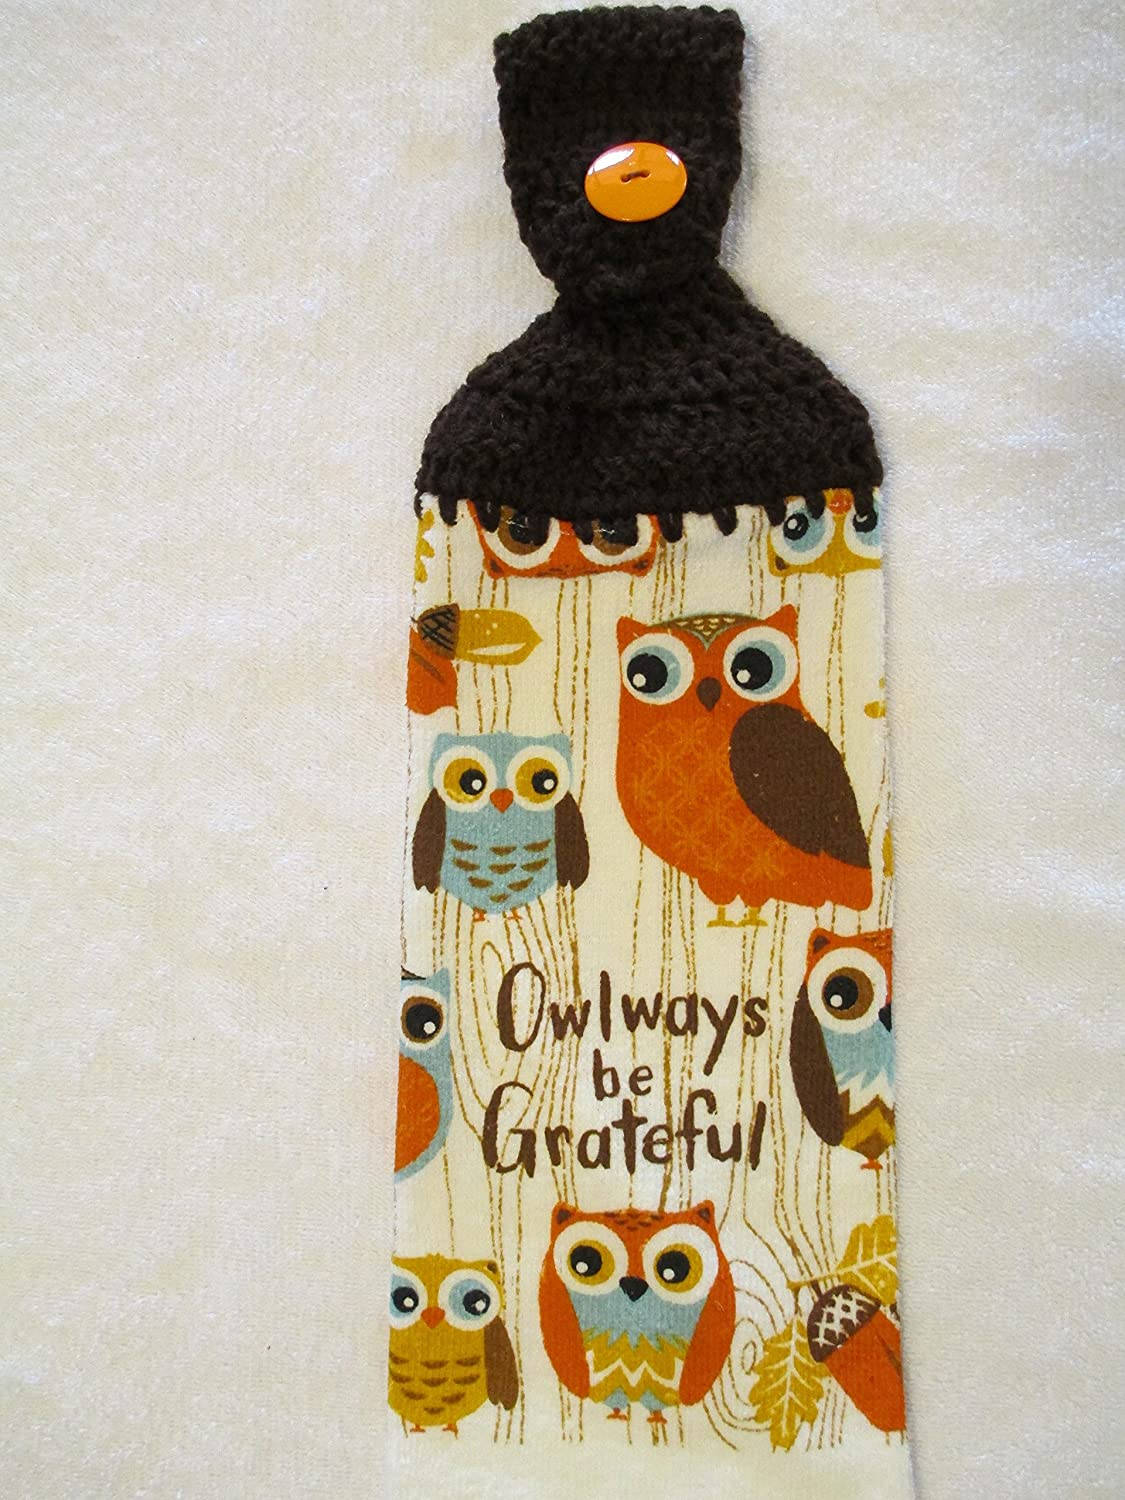 Amazon Com Crocheted Owlways Be Grateful Kitchen Towel With